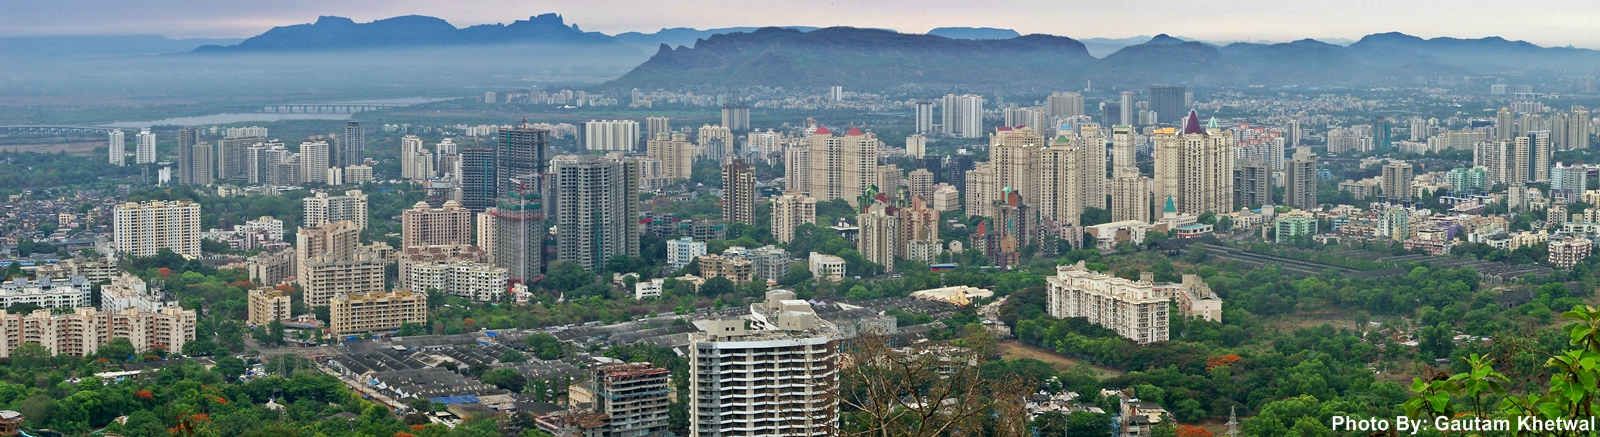 Thane | Metro | Approved - SkyscraperCity